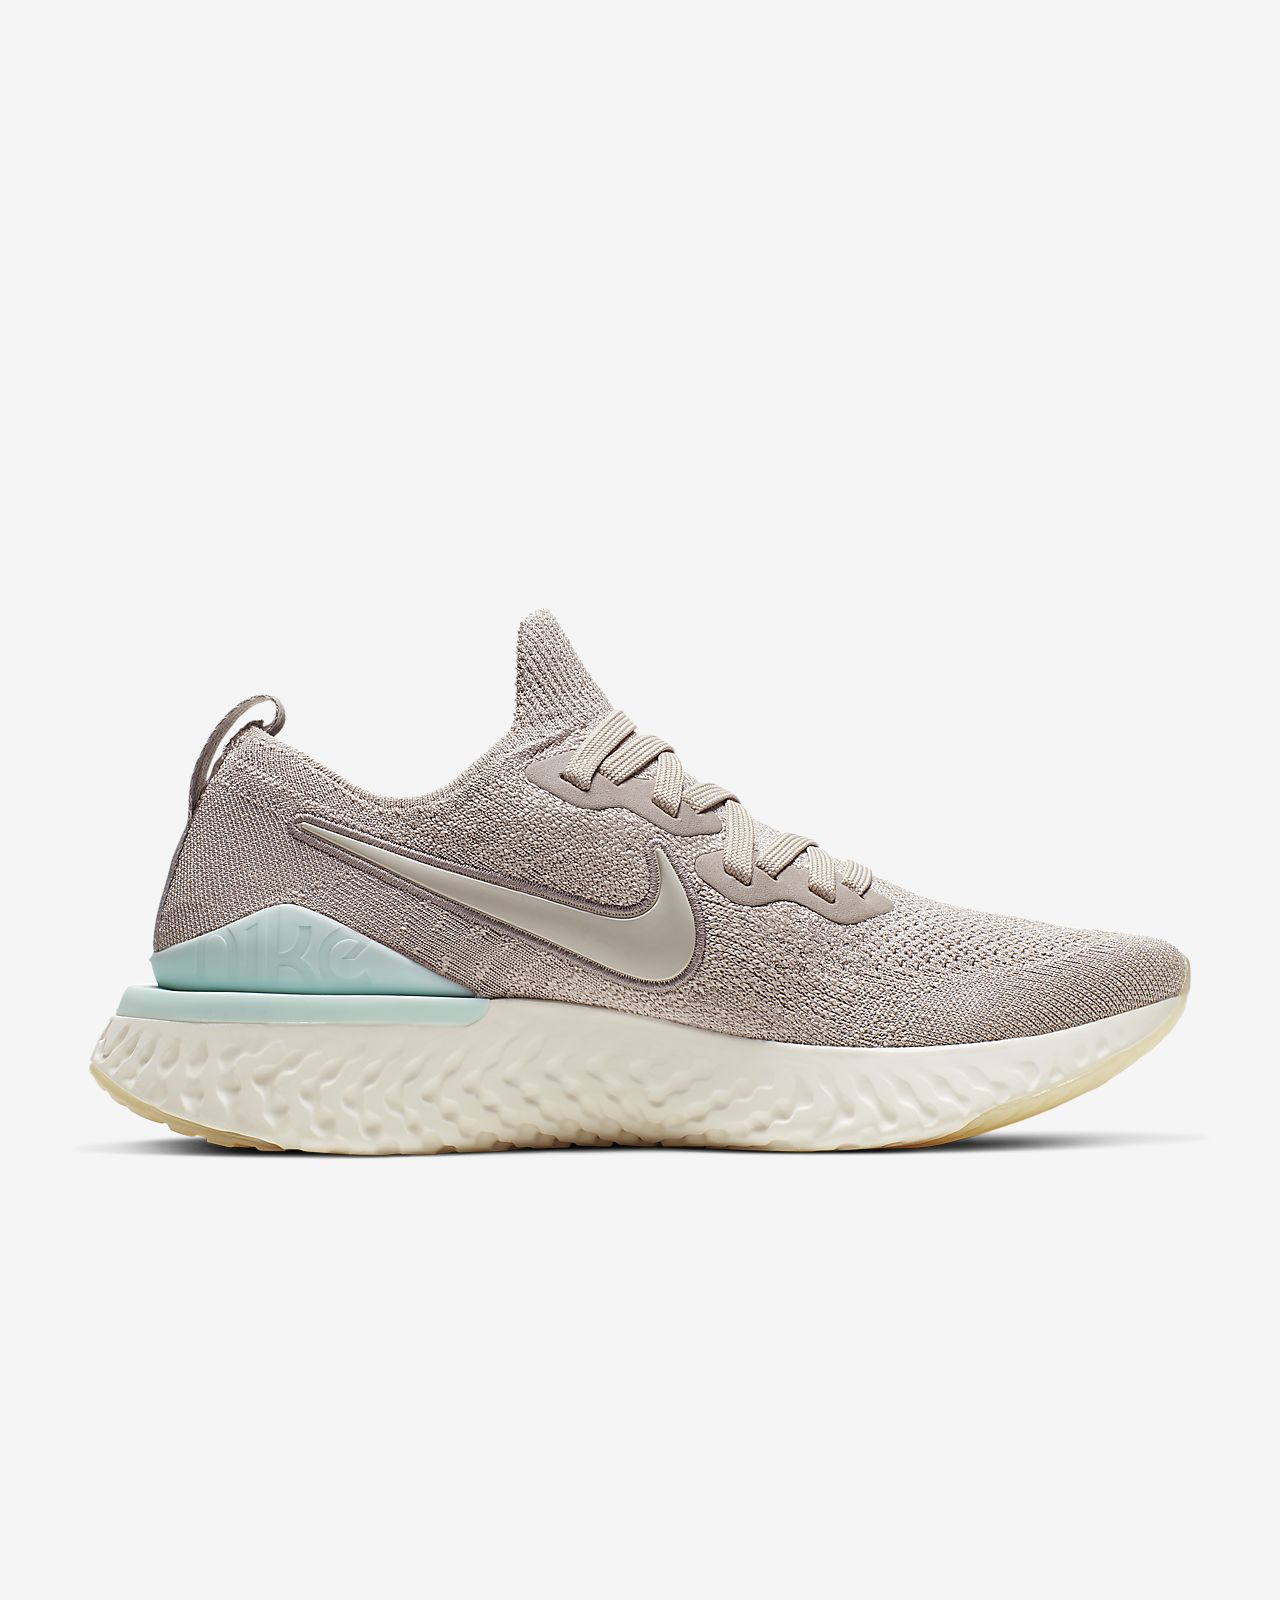 premium selection c2a03 c76a7 Low Resolution Nike Epic React Flyknit 2 Women s Running Shoe Nike Epic  React Flyknit 2 Women s Running Shoe